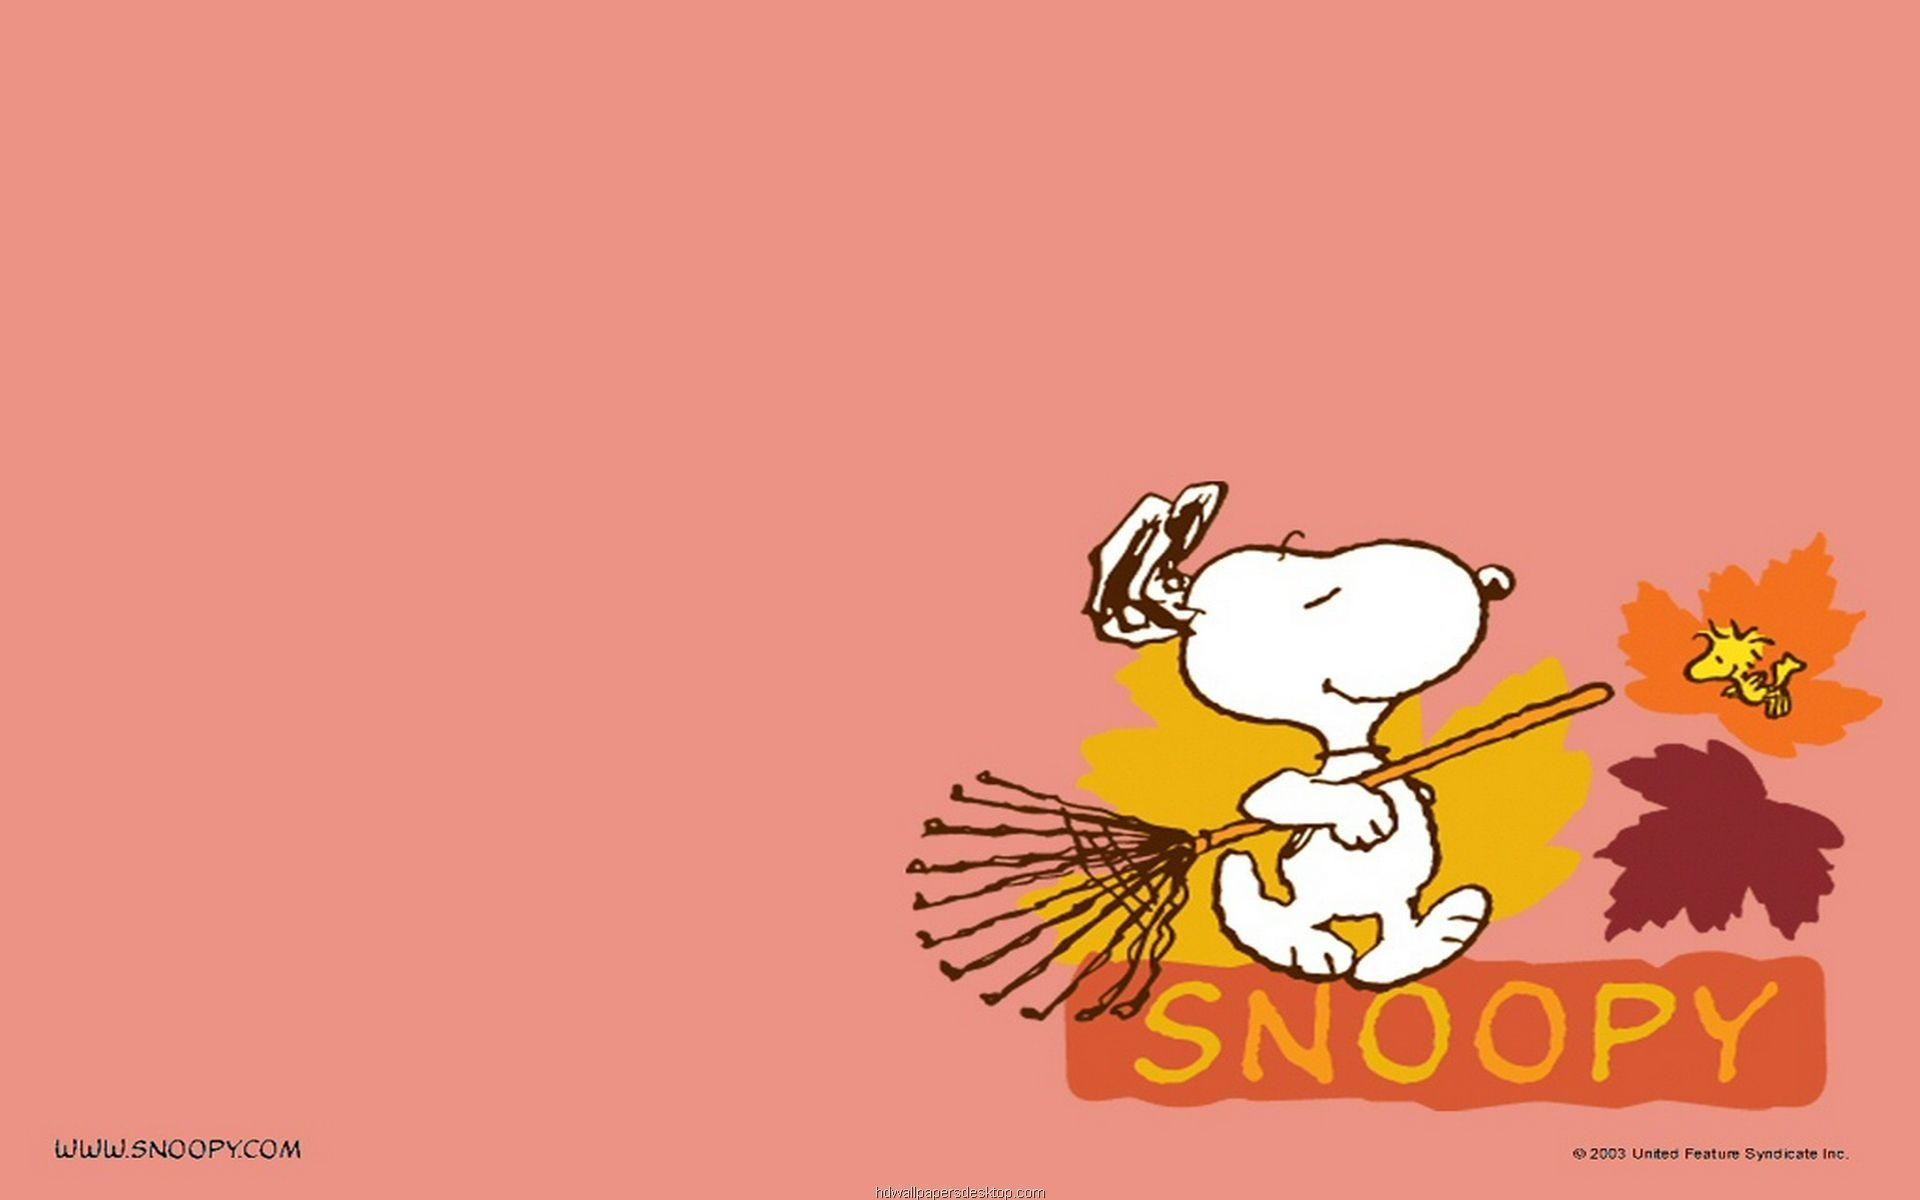 1920x1200 Snoopy Wallpaper | Large HD Wallpaper Database